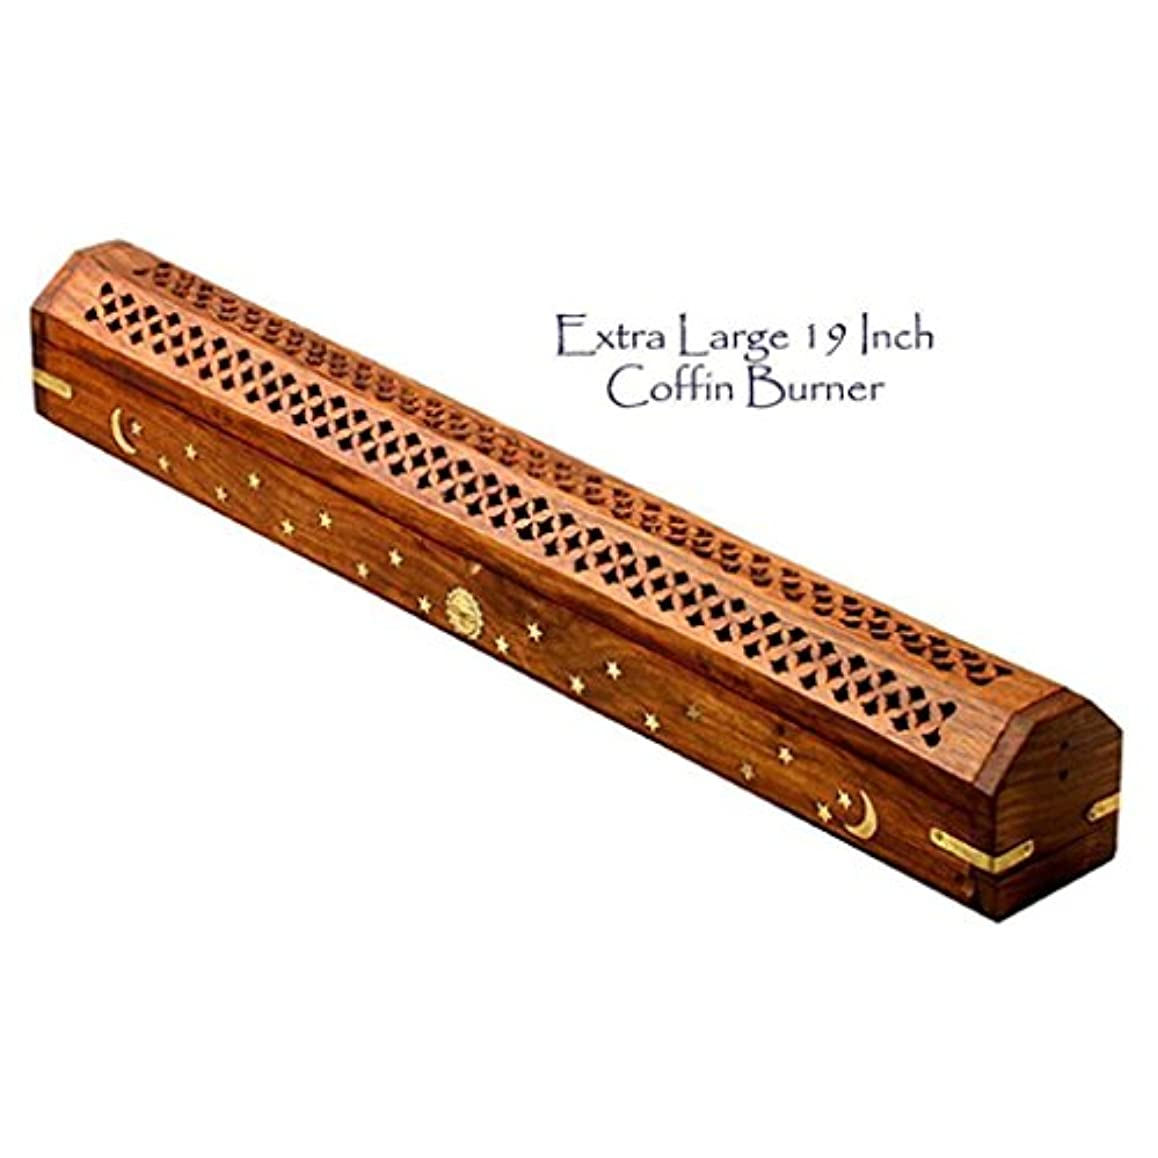 ハイランド子供達接続詞The Parfumerie Incense CoFfIn / Burner Extra Large for 19 in。Incense Sticks – 真鍮月&星